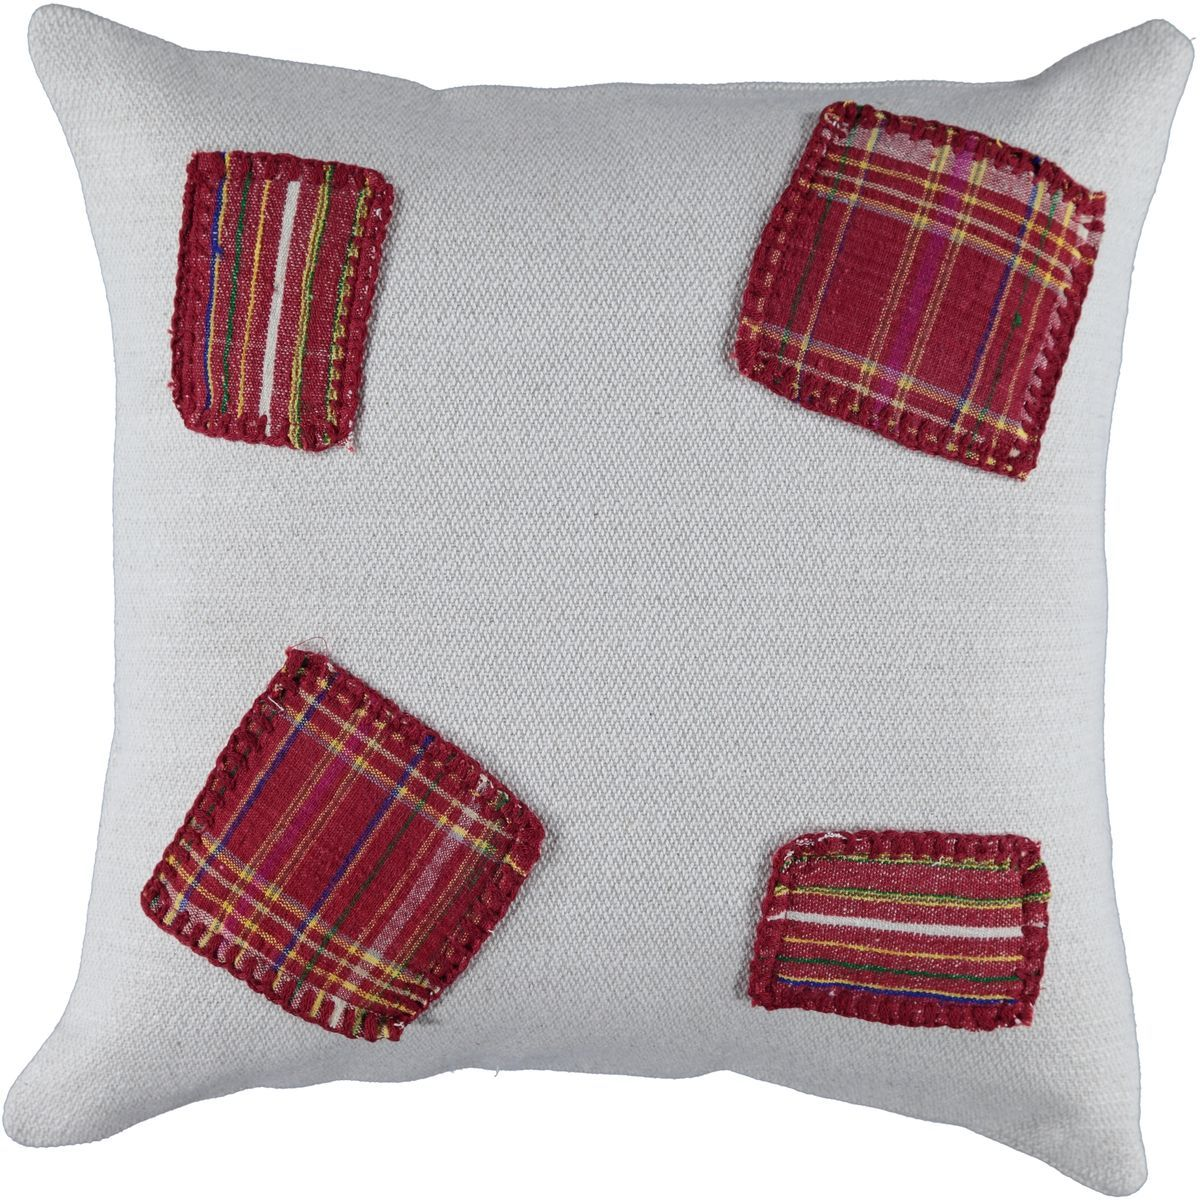 Cushion Cover / Benan - Patched